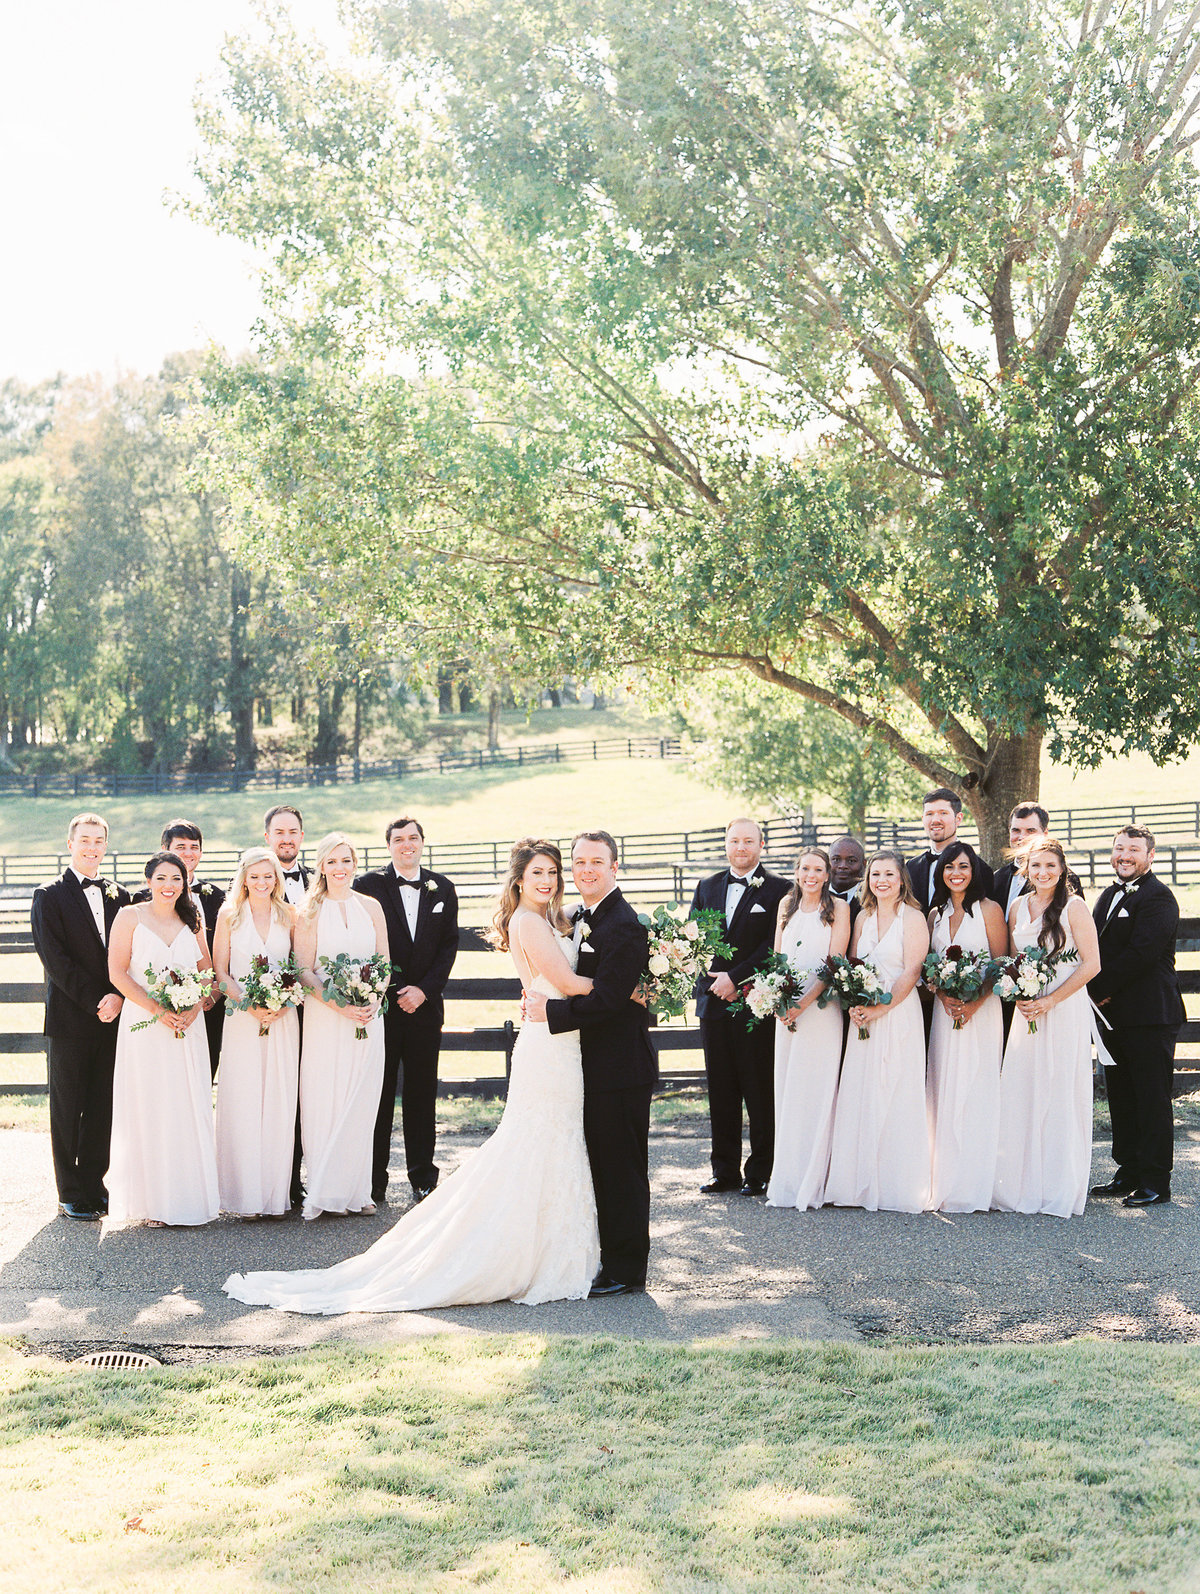 702_Anne & Ryan Wedding_Lindsay Vallas Photog